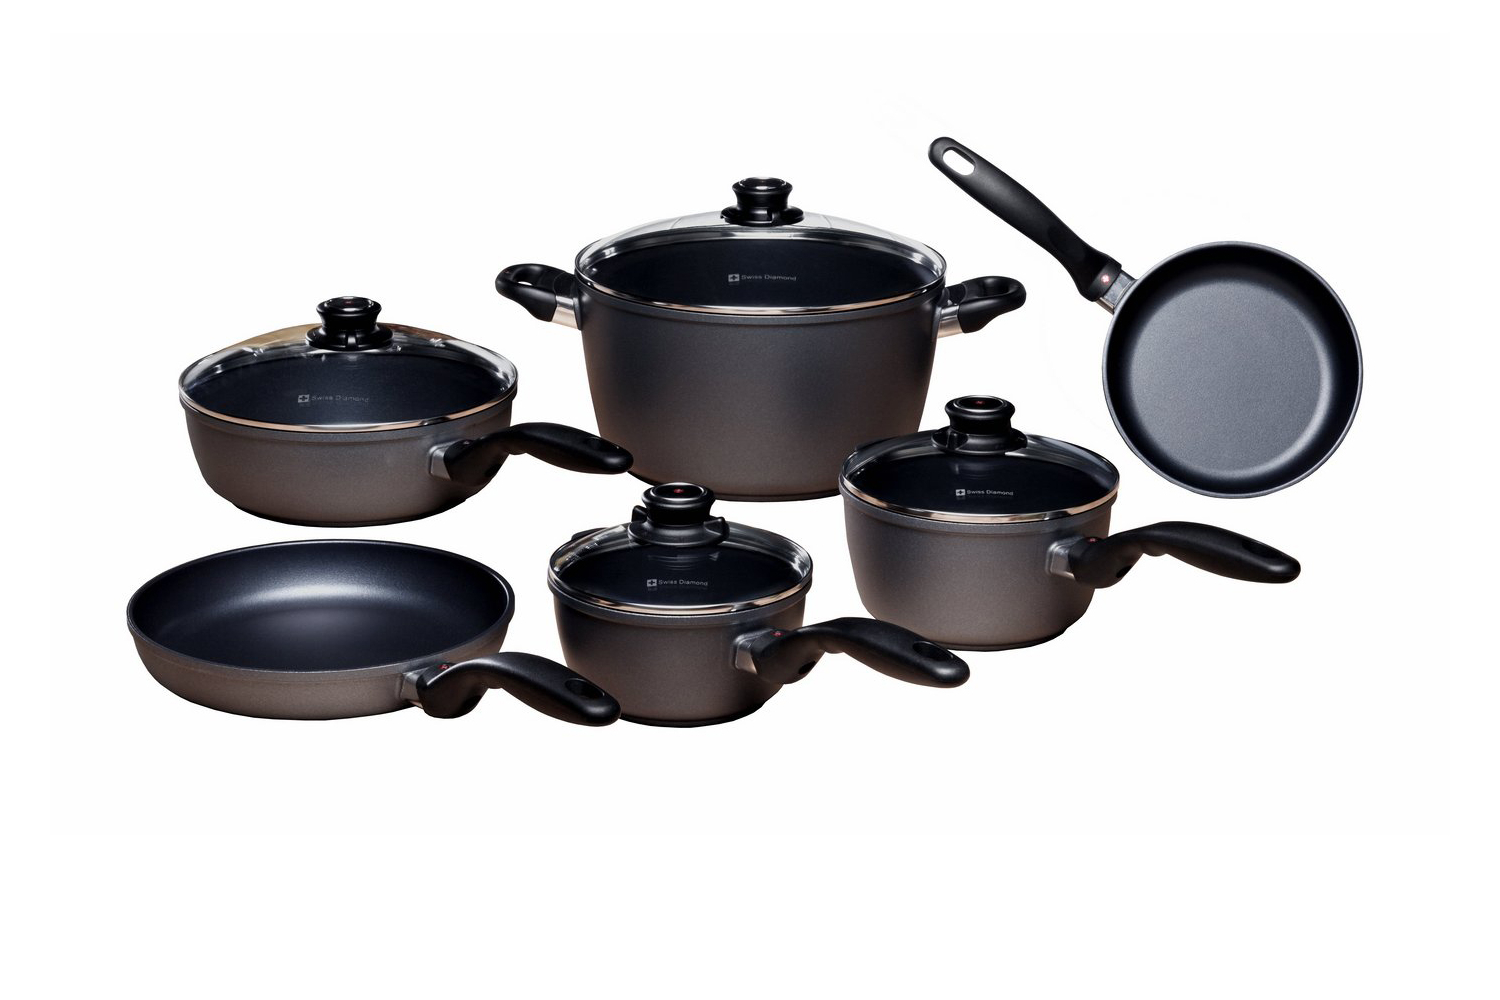 Swiss Diamond Nonstick 10 Piece Cookware Set